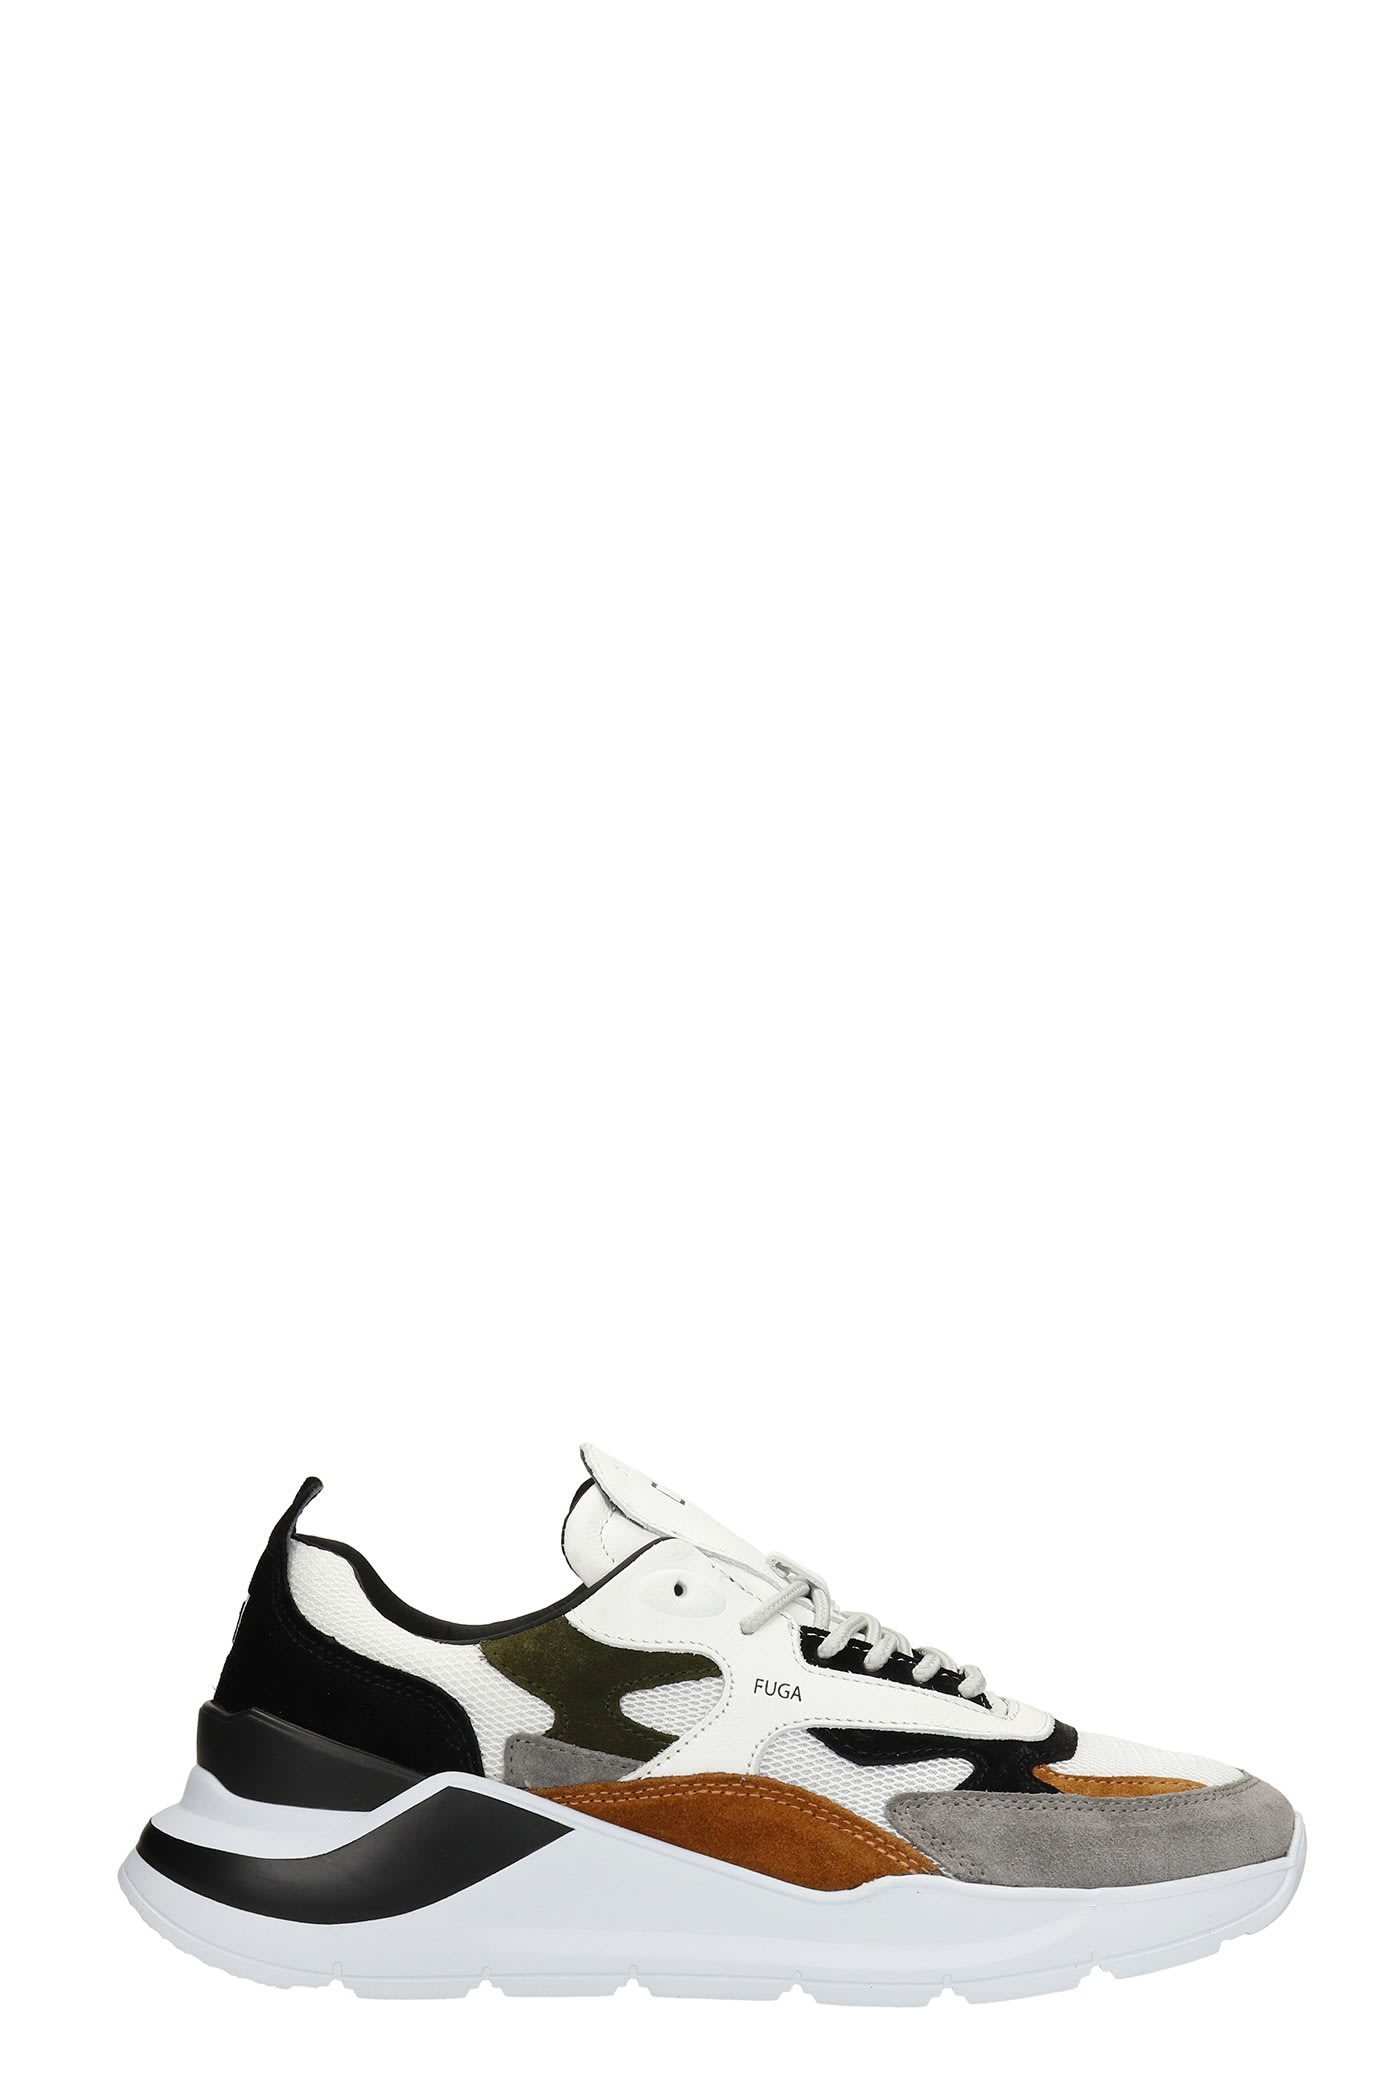 Fuga Sneakers In White Suede And Fabric